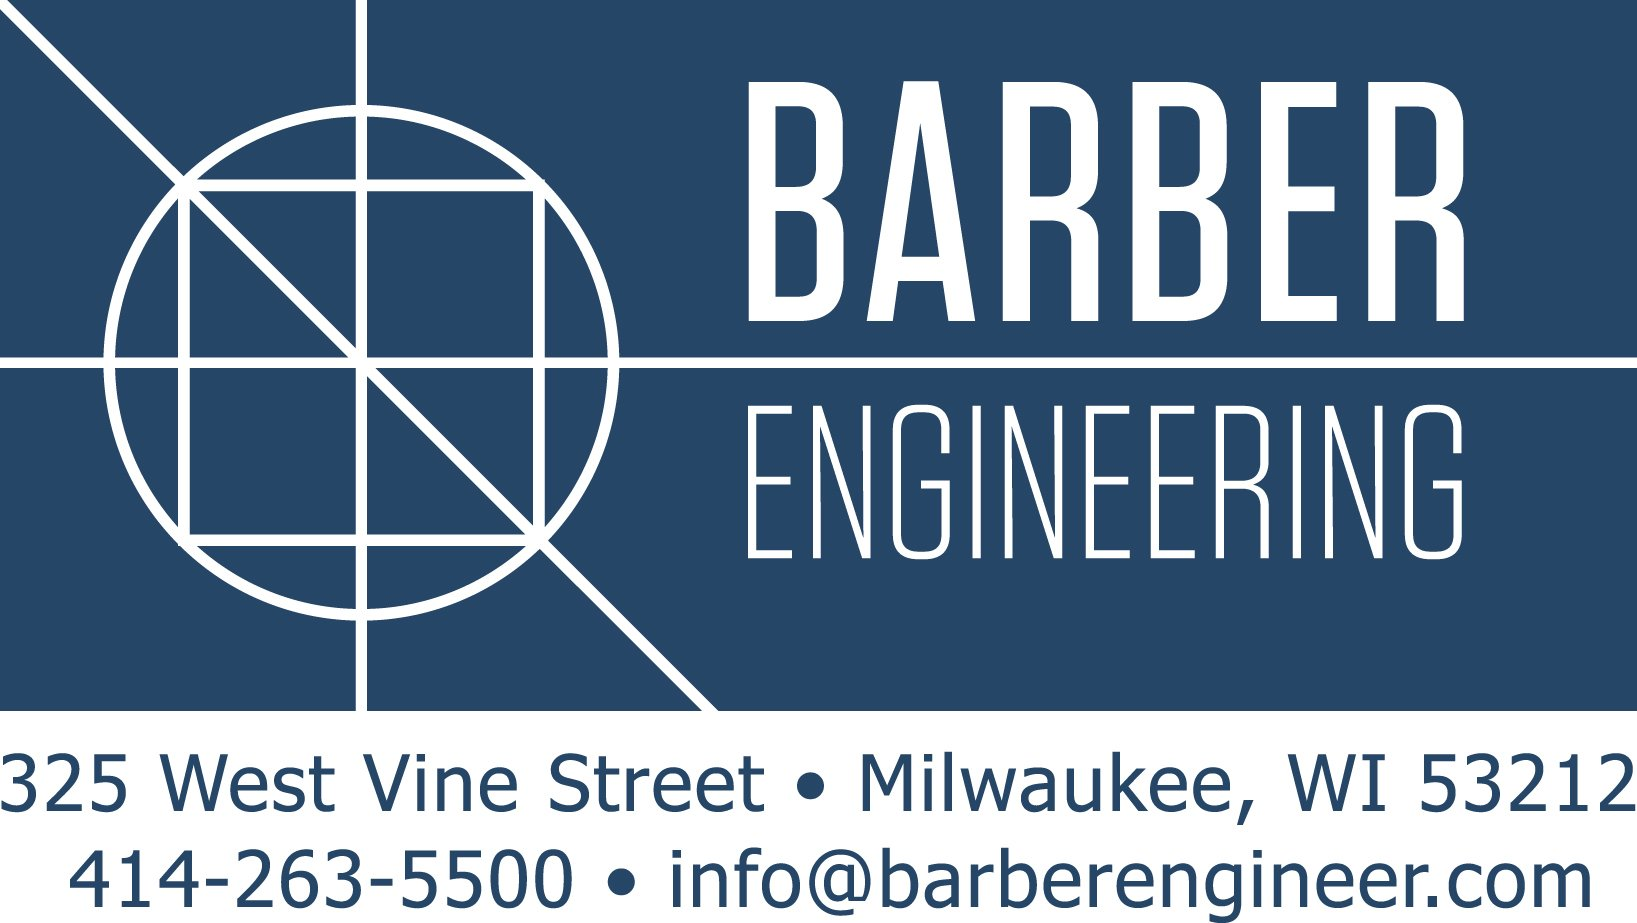 Barber Engineering, LLC